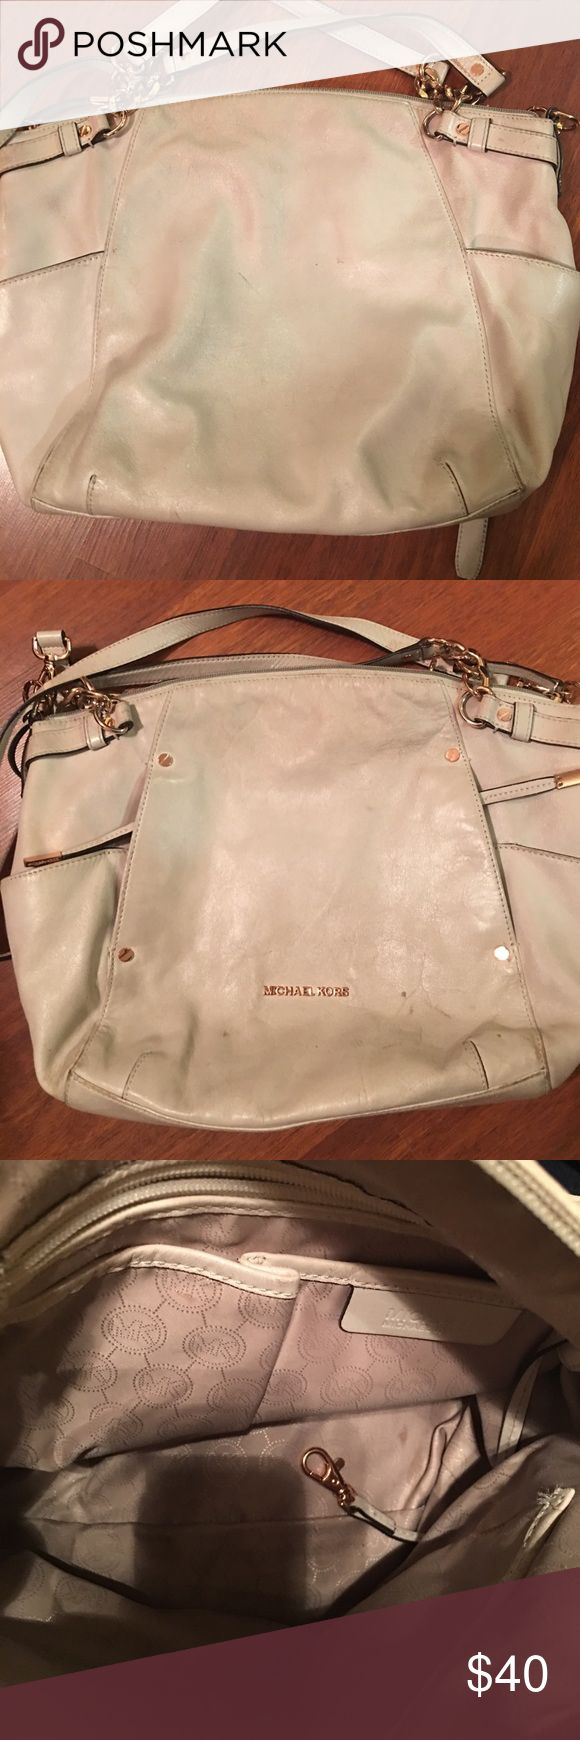 Mikael Kors cream shoulder bag Cream shoulder bag, use with a scratch you can see on the picture when you zoom, MICHAEL Michael Kors Bags Shoulder Bags